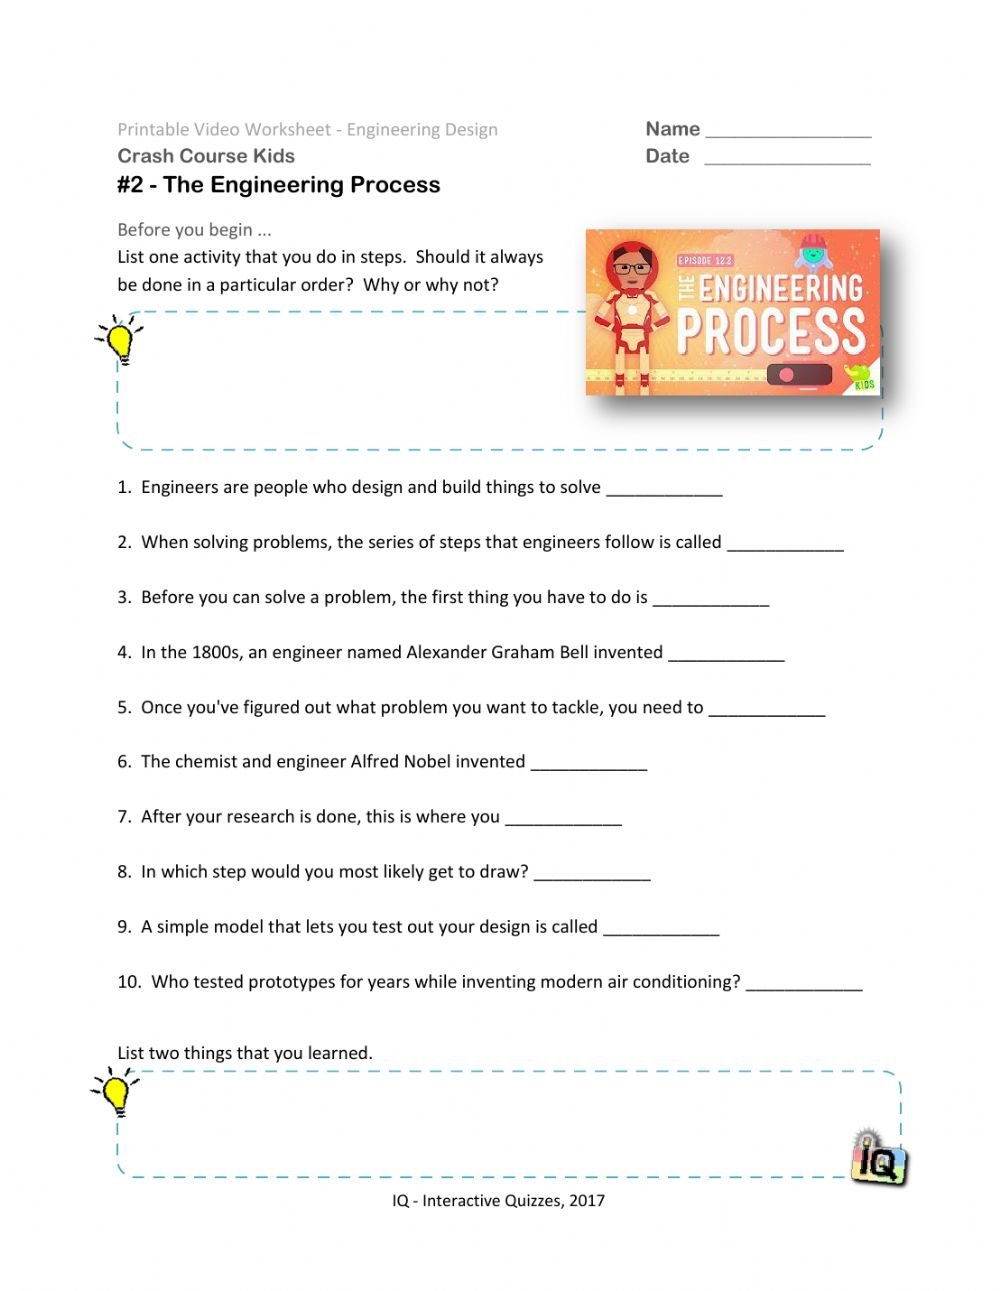 255 Crash Course The Engineering Process Video -25 worksheet Regarding Engineering Design Process Worksheet